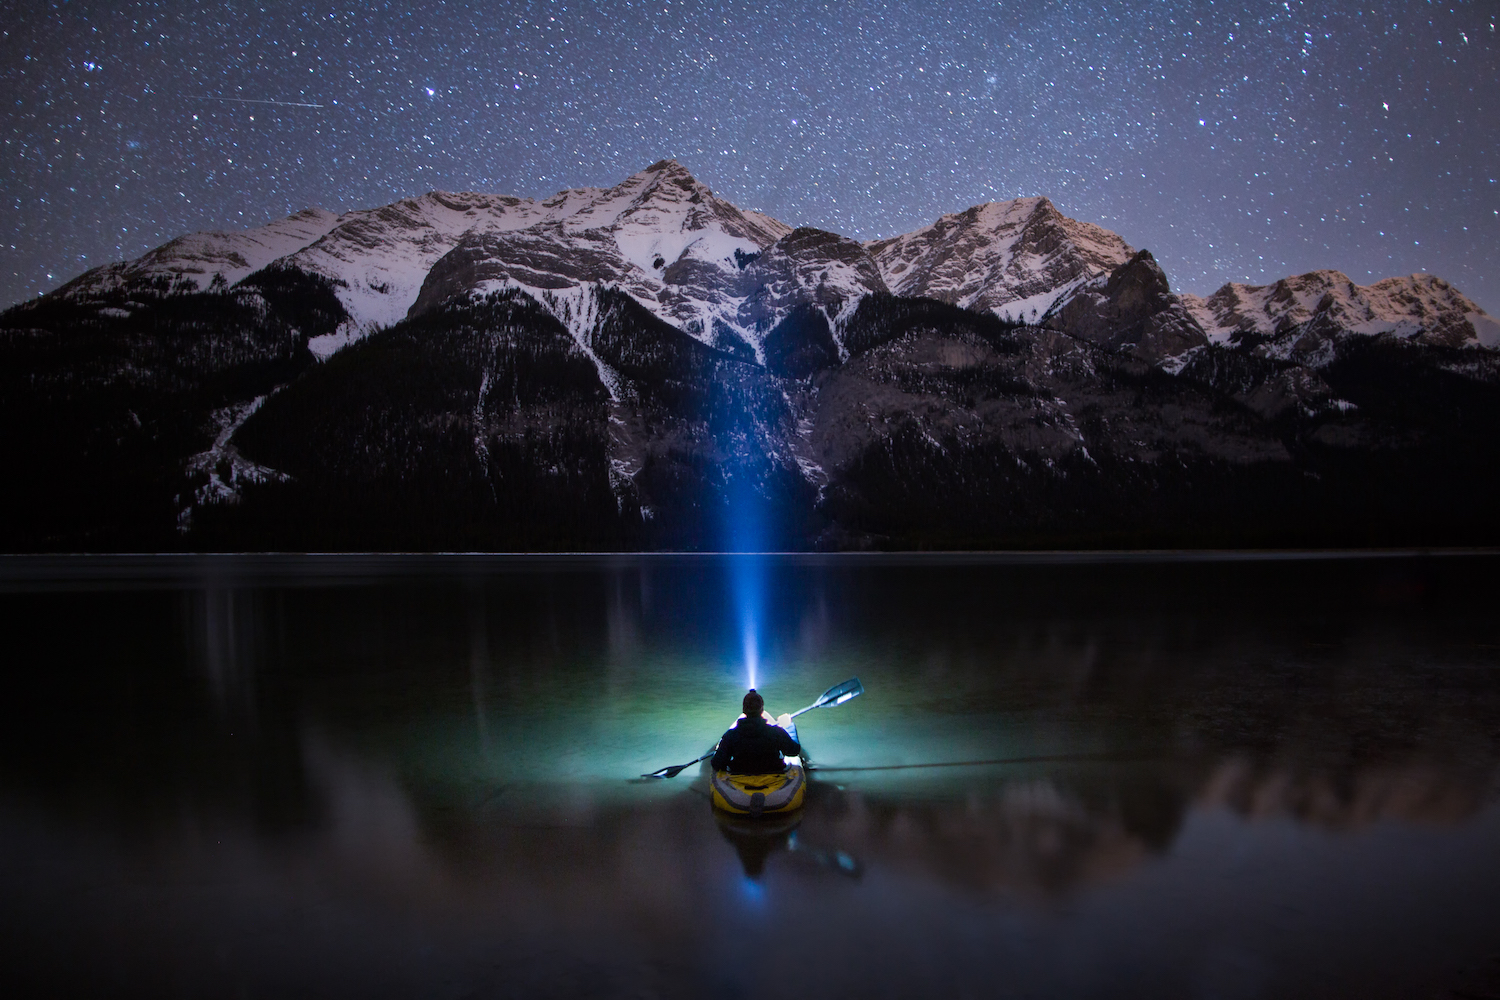 Reconnect with Nature Through the Breathtaking Self-Portraits of Paul Zizka